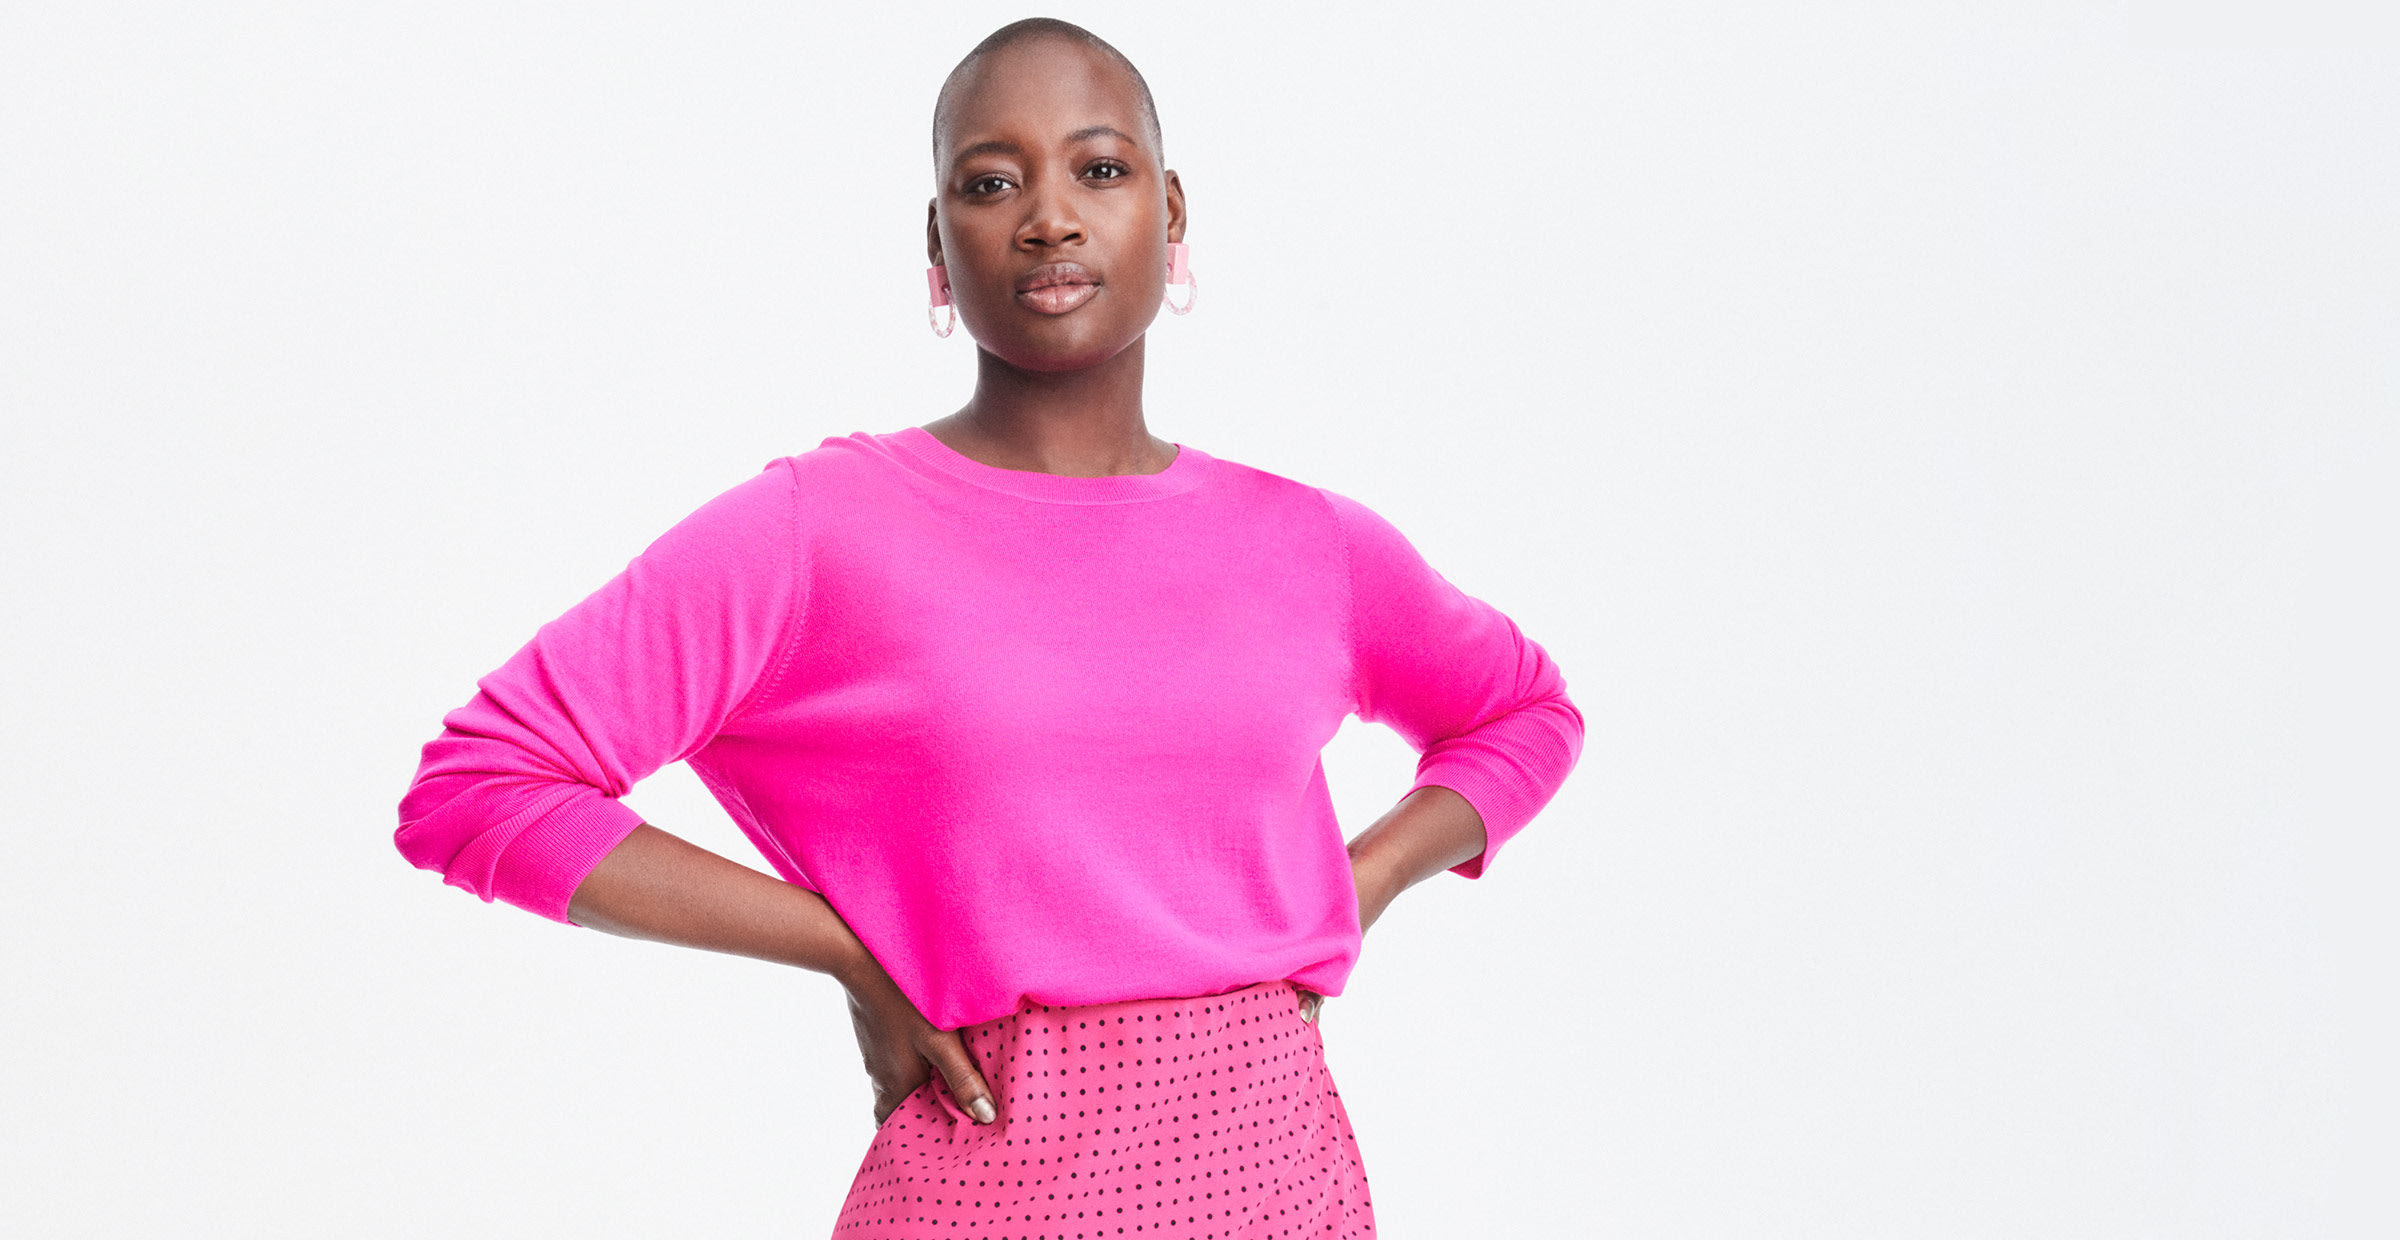 Women in a bright pink sweater and skirt